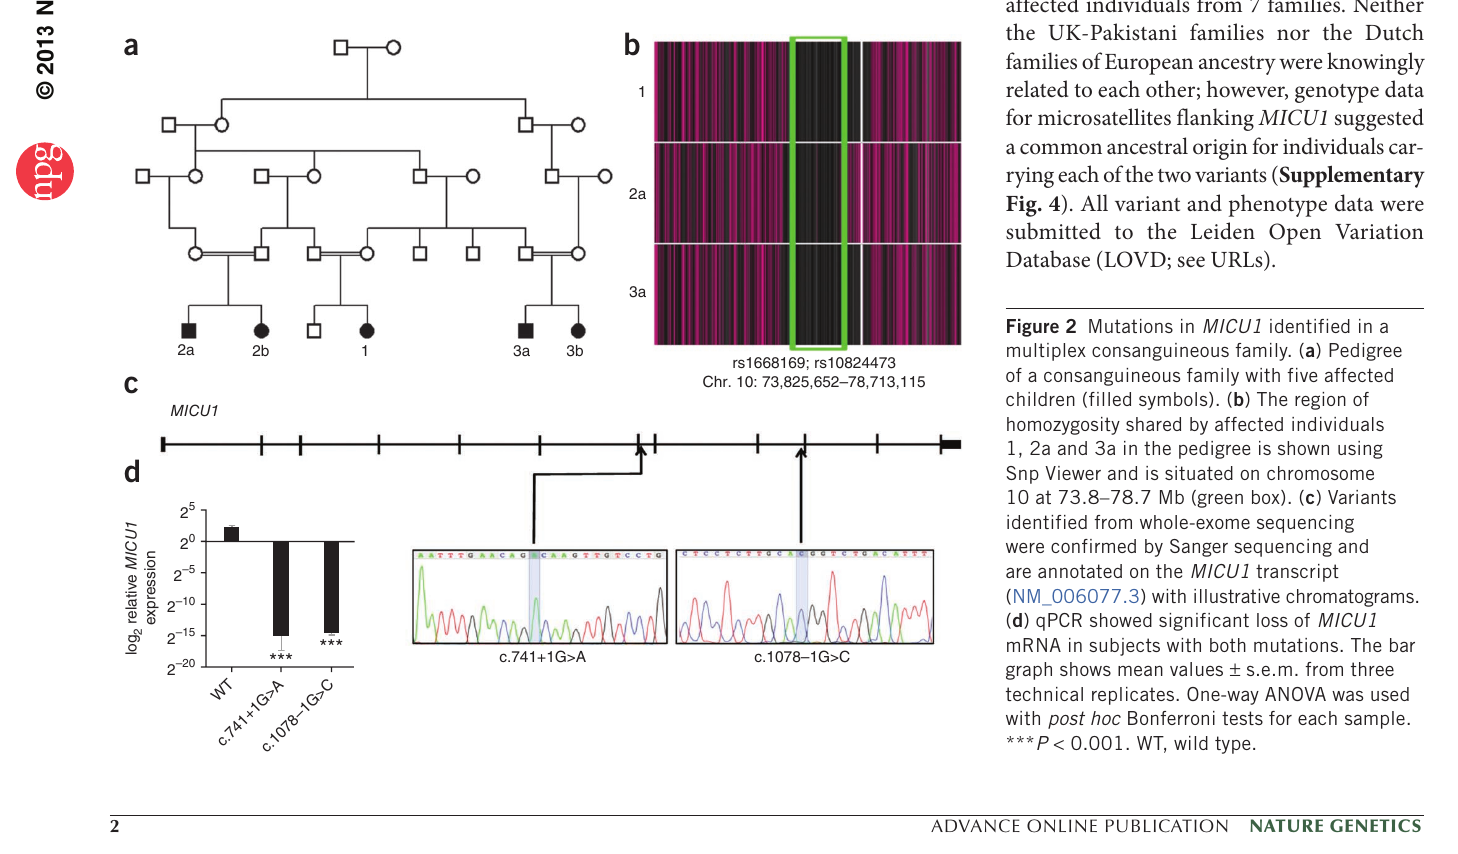 The genome assembly of human chromosome y with real snp position.